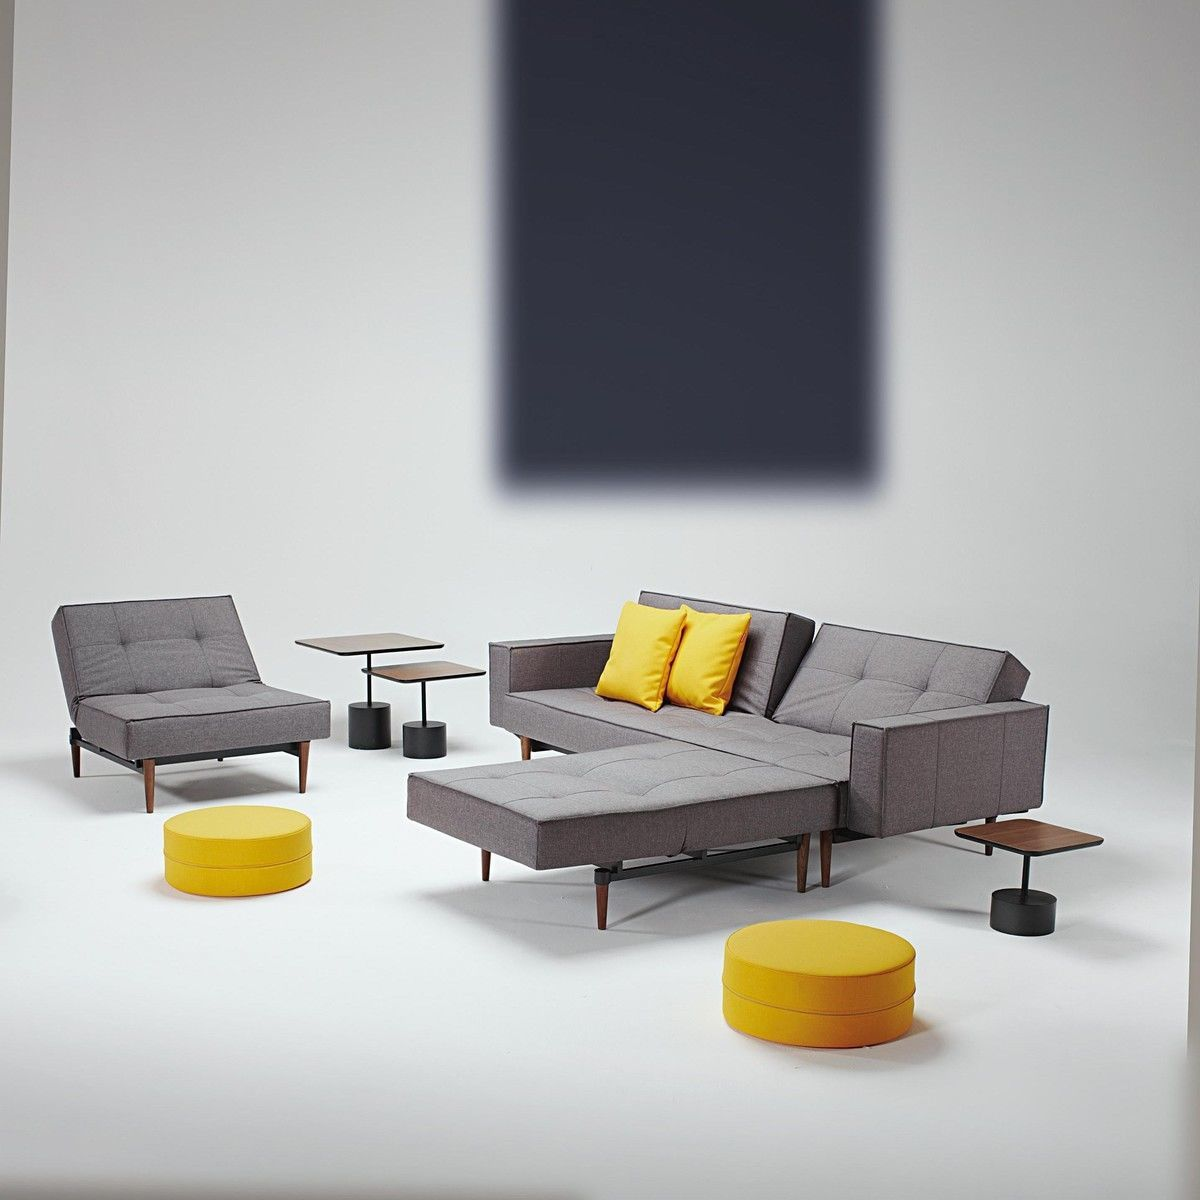 Bettsofa Vitra Splitback Wood Sessel Innovation Ambientedirect